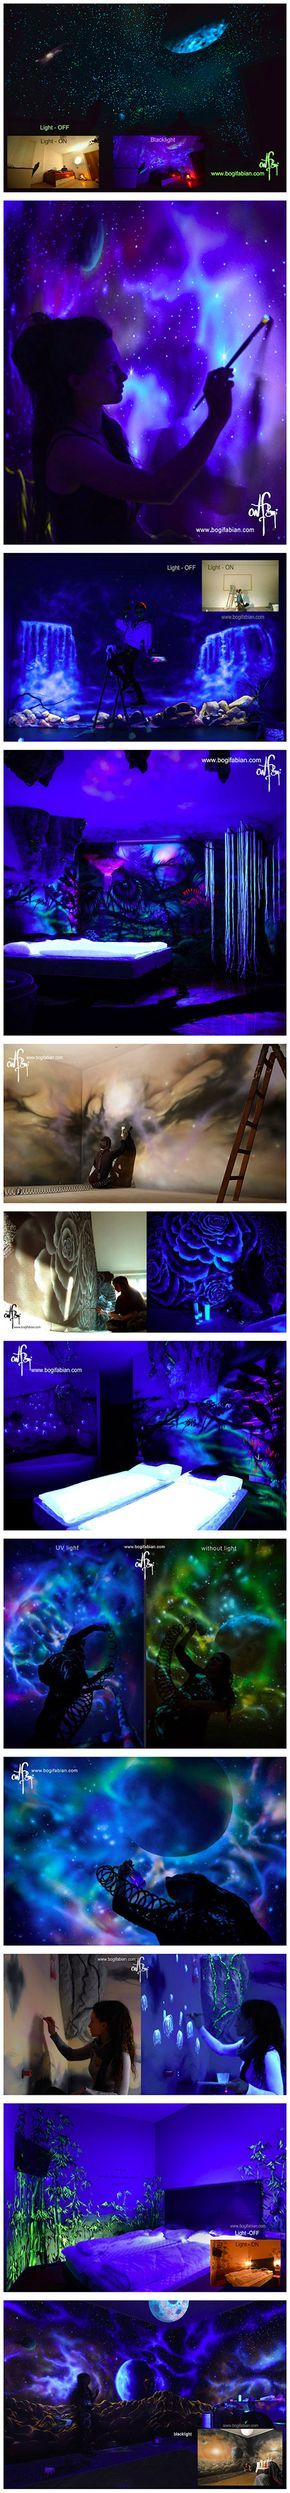 Hungarian-born, Vienna-based artist Bogi Fabian uses glowing UV paint to create gorgeous, luminescent murals that can only be seen under a black light. With the flip of a light switch, blank bedroom walls are suddenly covered with cosmic scenes, glittering stars, beautiful landscapes, and lush flora and fauna that emit an ethereal radiance in the darkness.